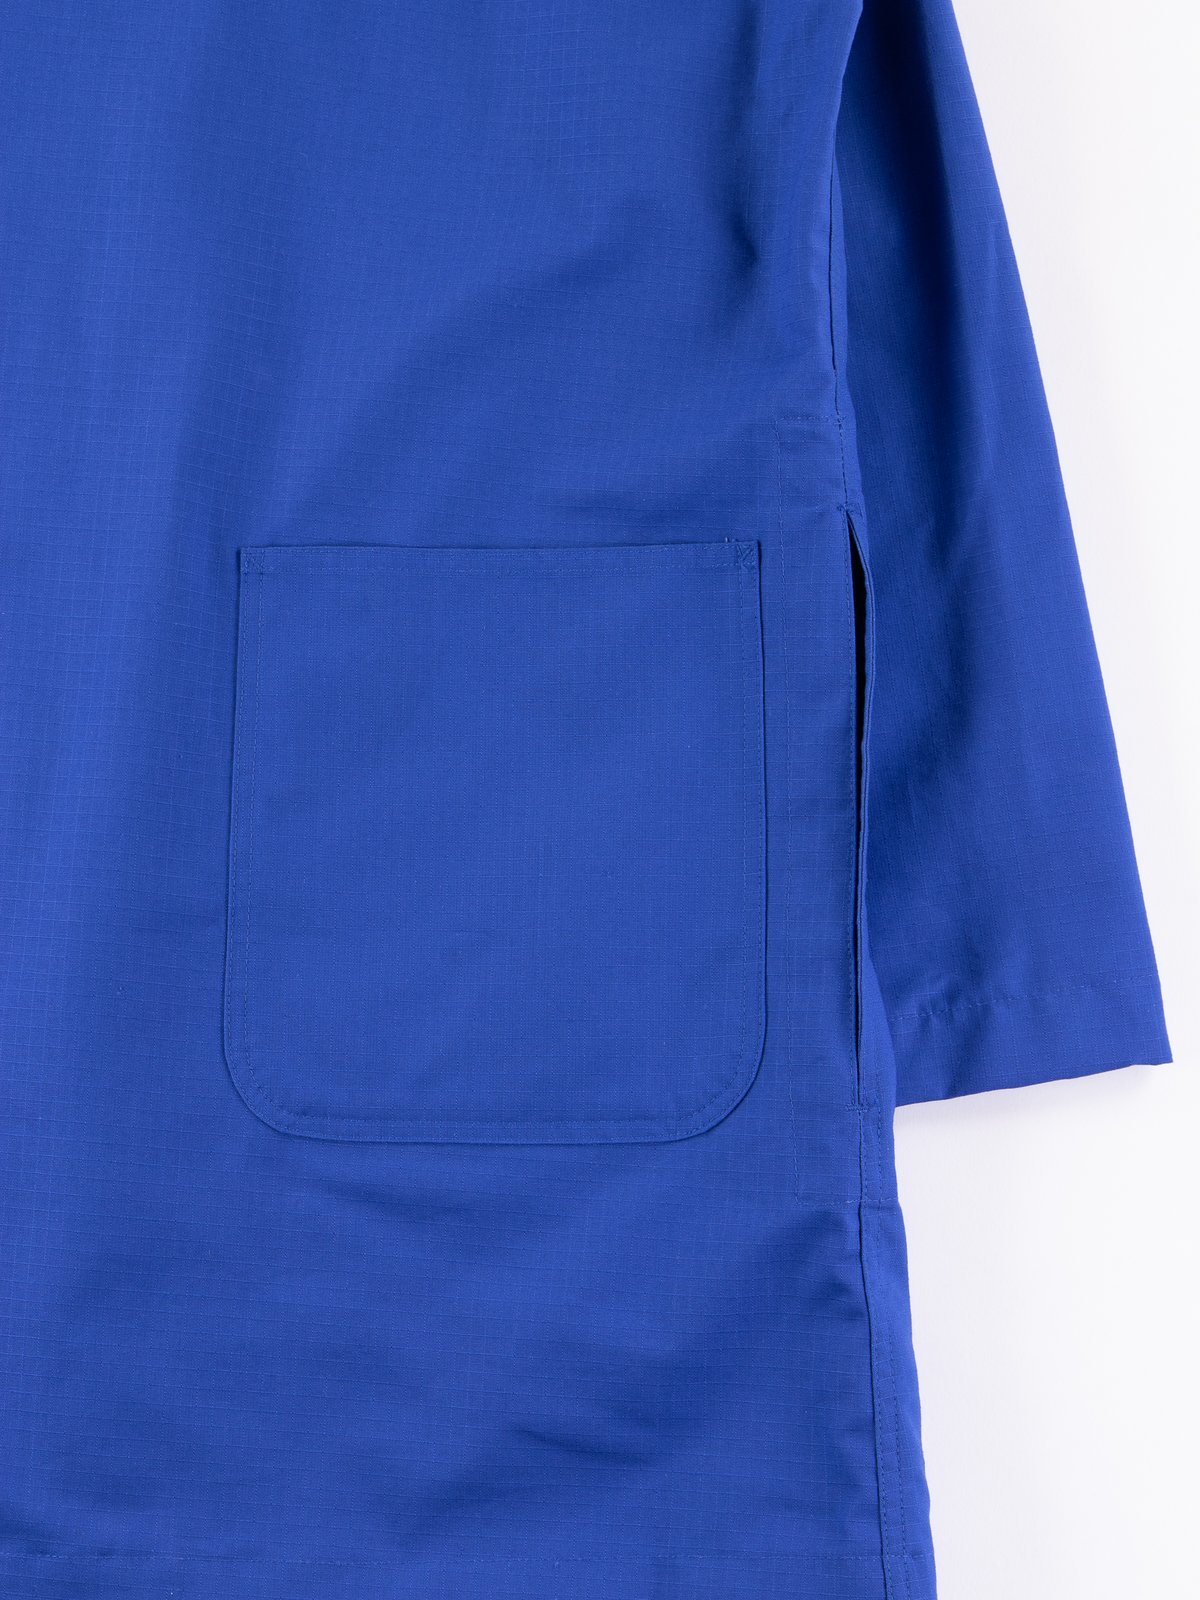 Royal Cotton Ripstop Shop Coat - Image 6